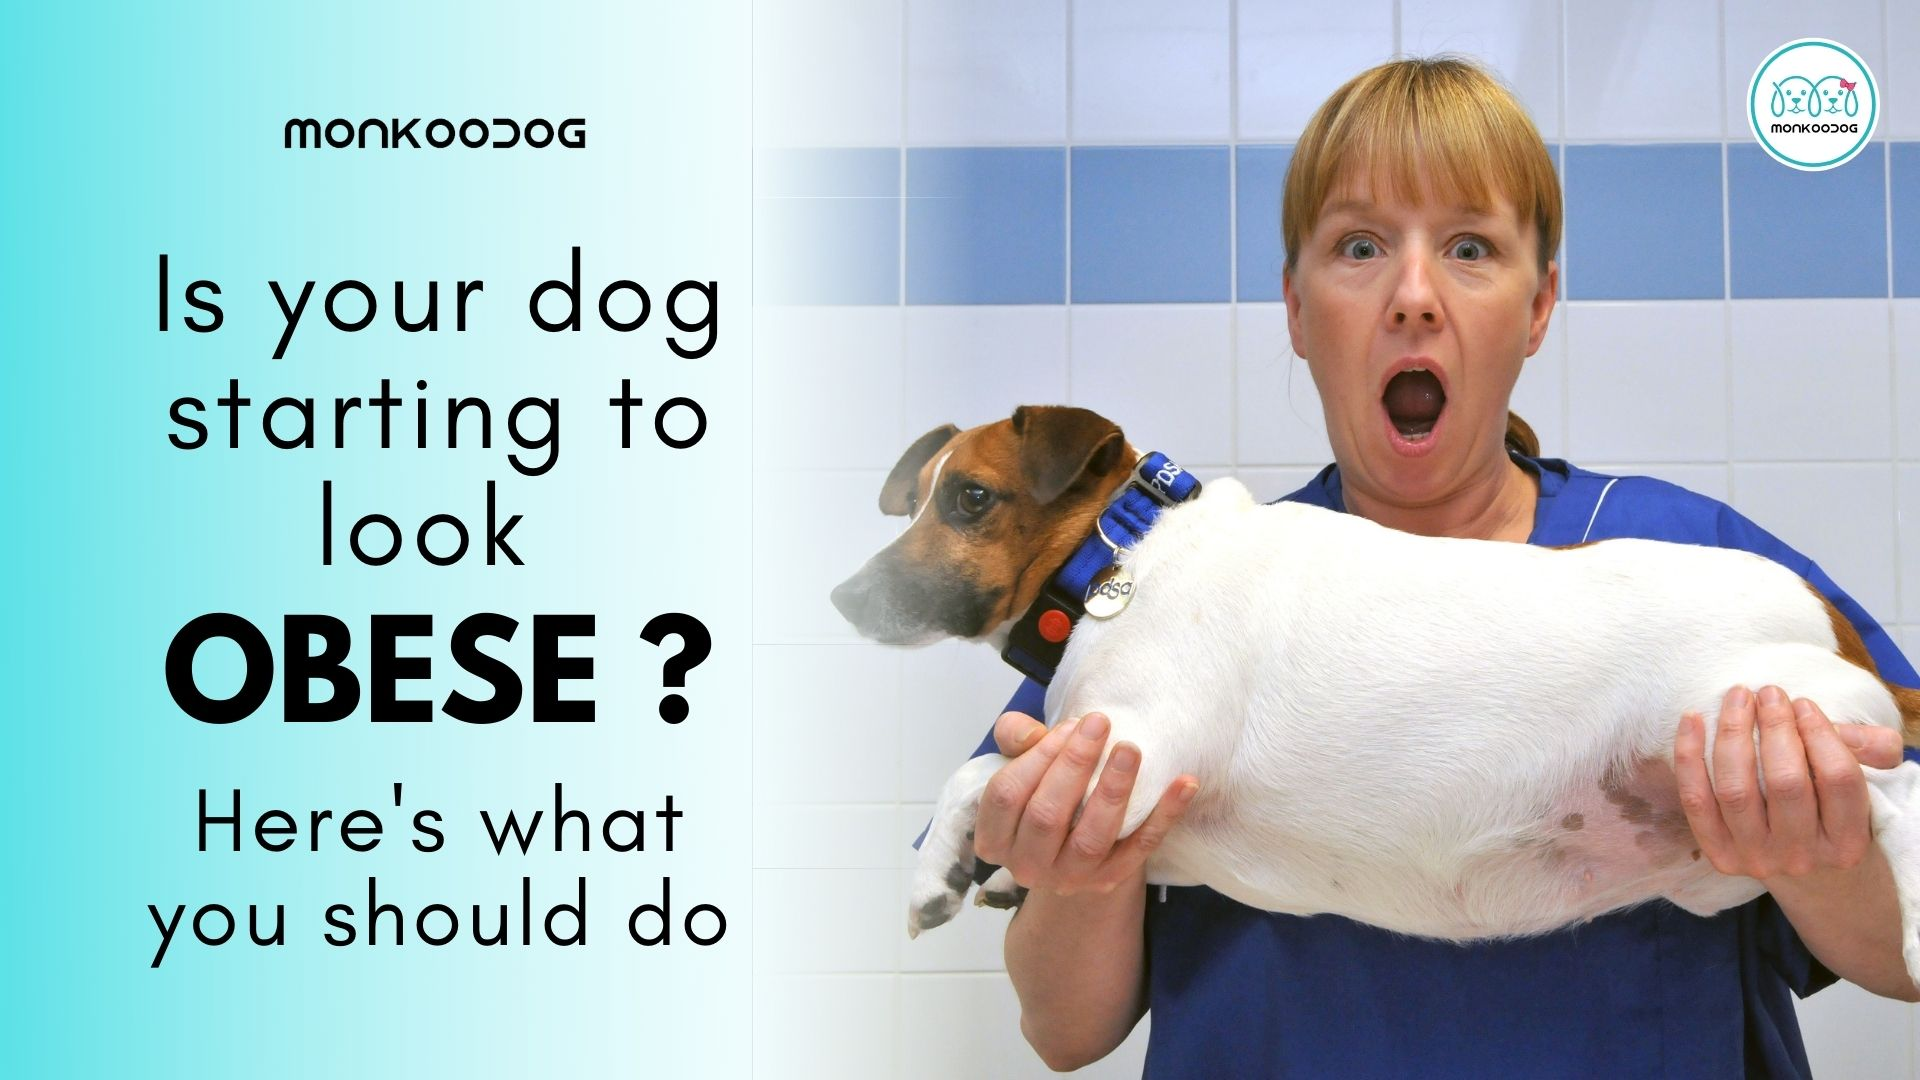 Is your dog starting to look obese? Here's what to do by Monkoodog